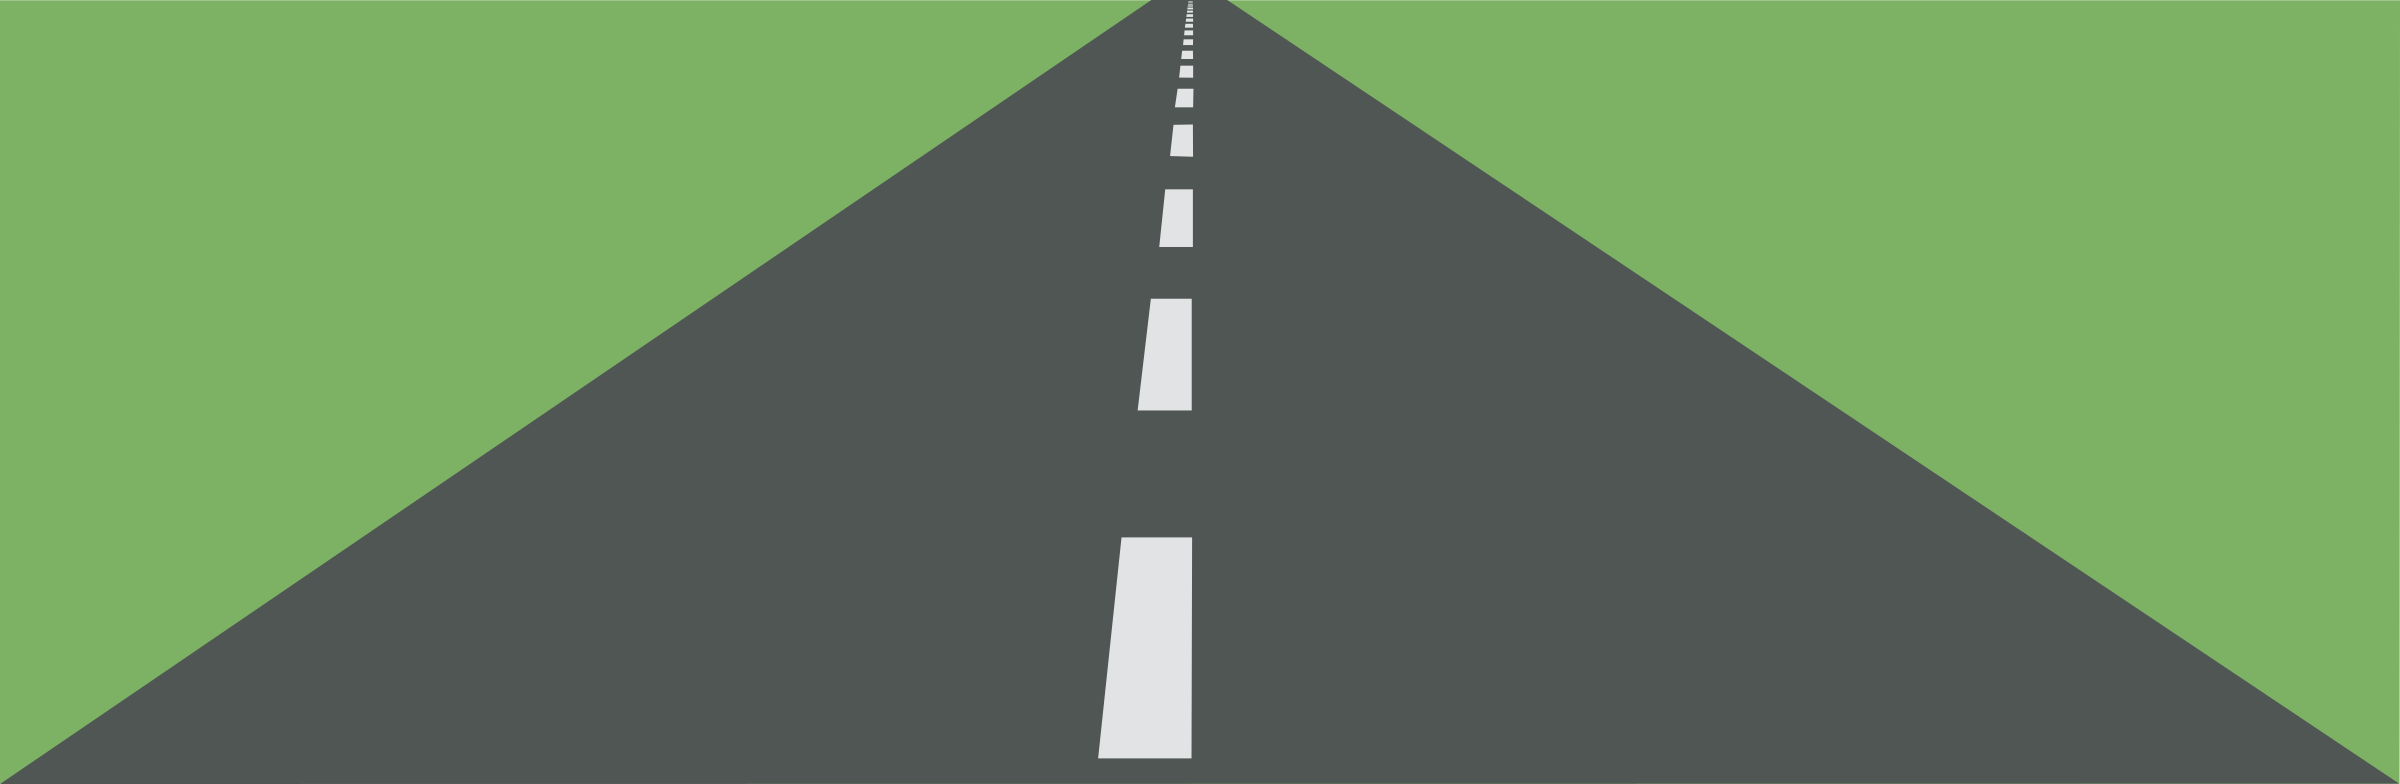 Road clipart #8, Download drawings